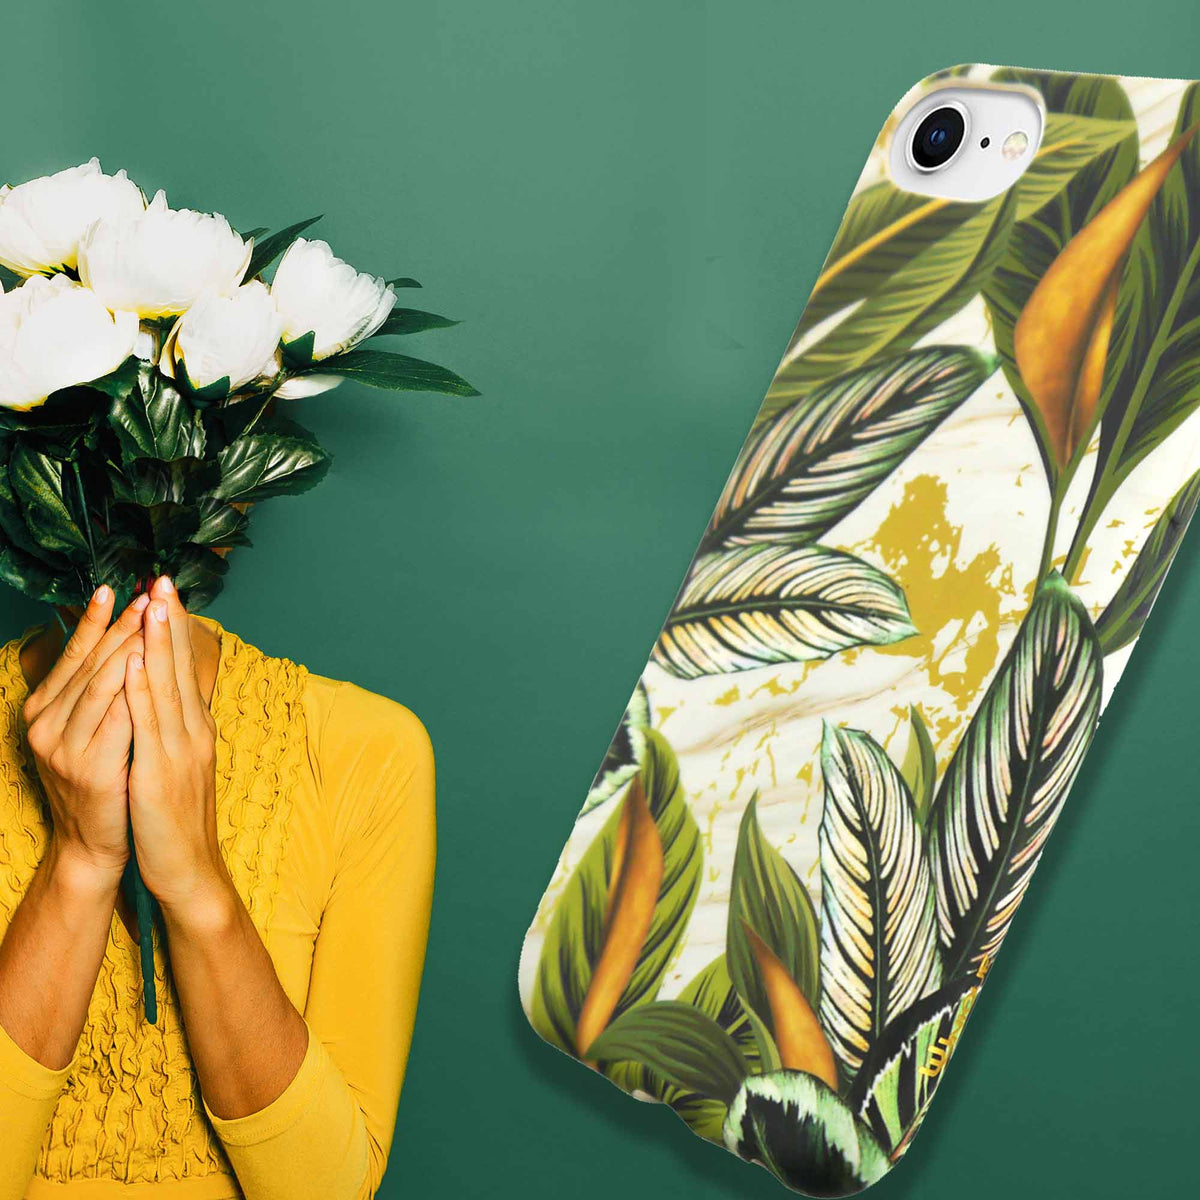 Uunique Apple iPhone 6/7/8 Eco TPU Lush Leaf